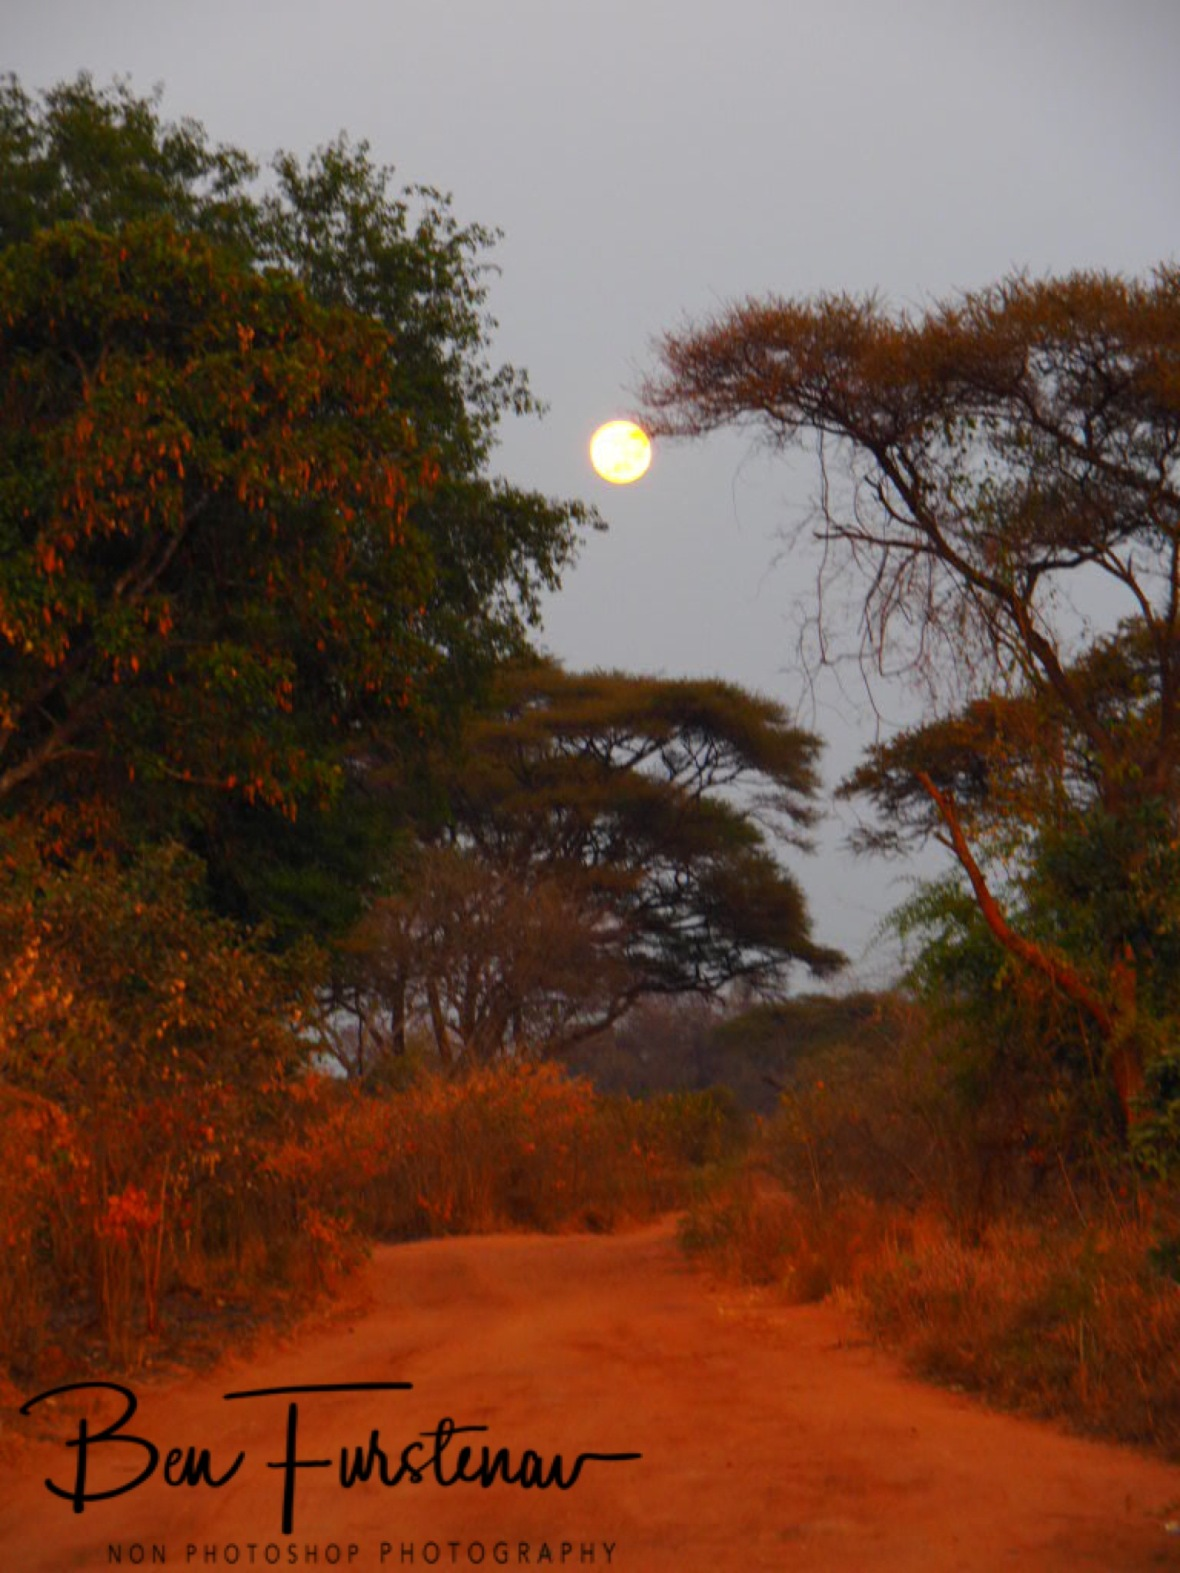 Following the full moon, Lower Zambezi Valley, Zambia